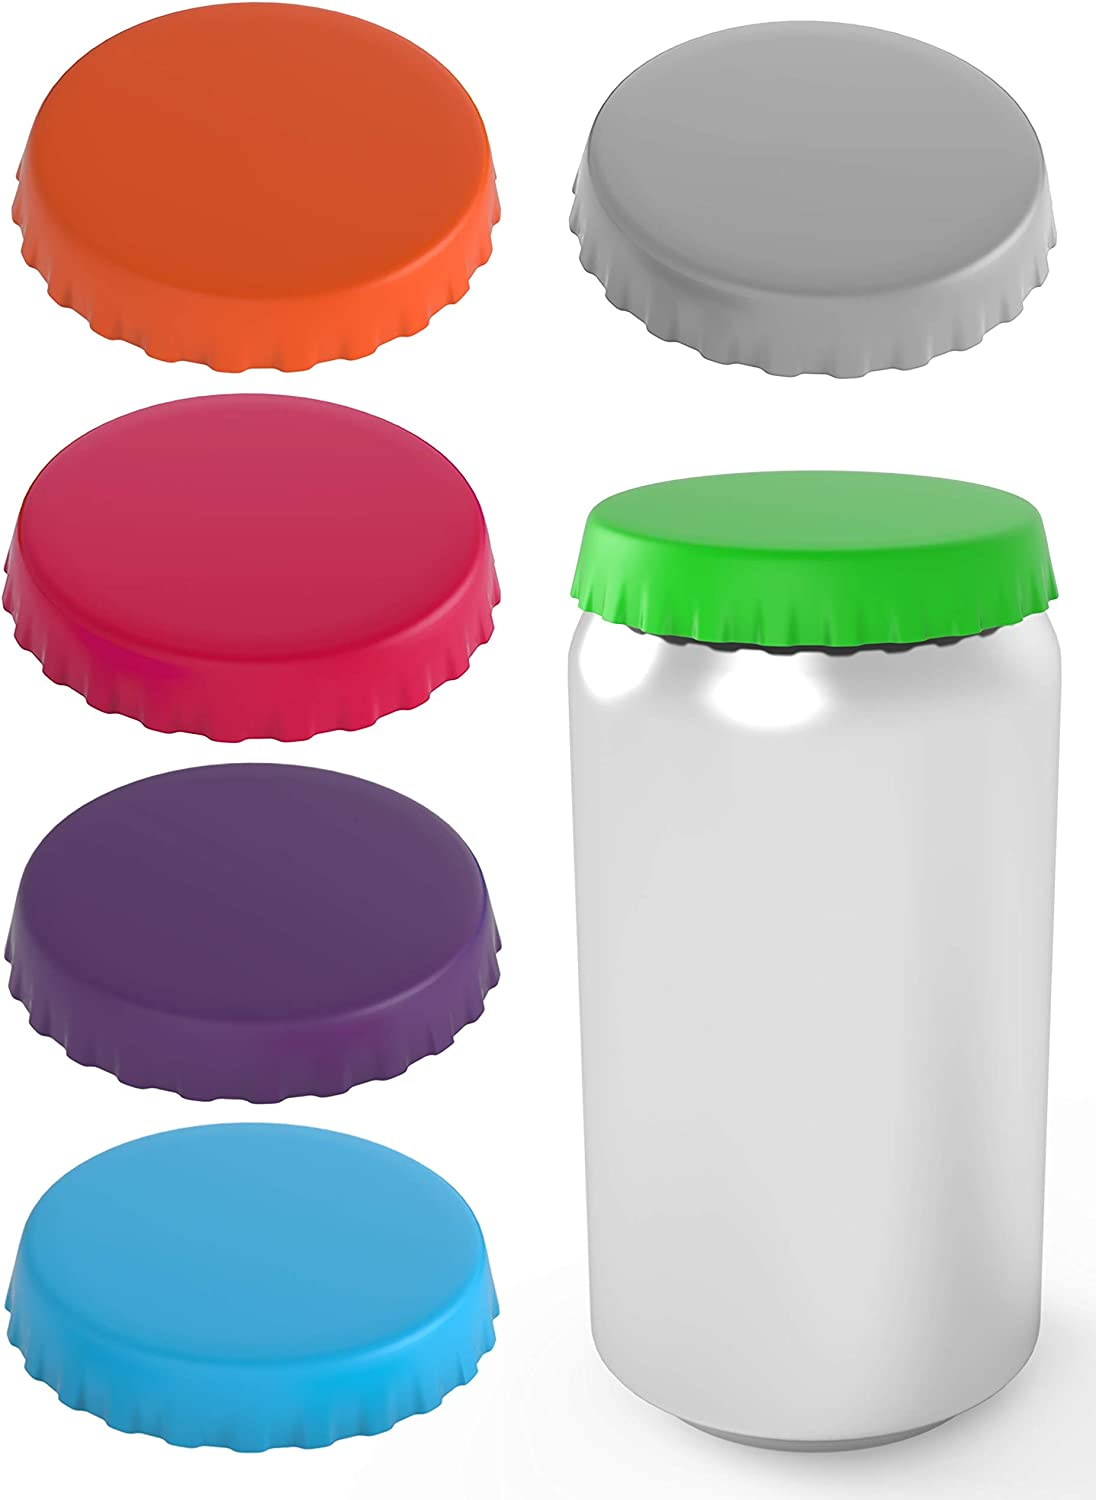 Silicone Soda Can Lids – Can Covers – Can Caps – Can Topper – Can Saver – Can Stopper – Shield your coke, beer, and pop cans from flies, bees, and dust! – Fits standard soda cans (Assorted - 6 Pack)